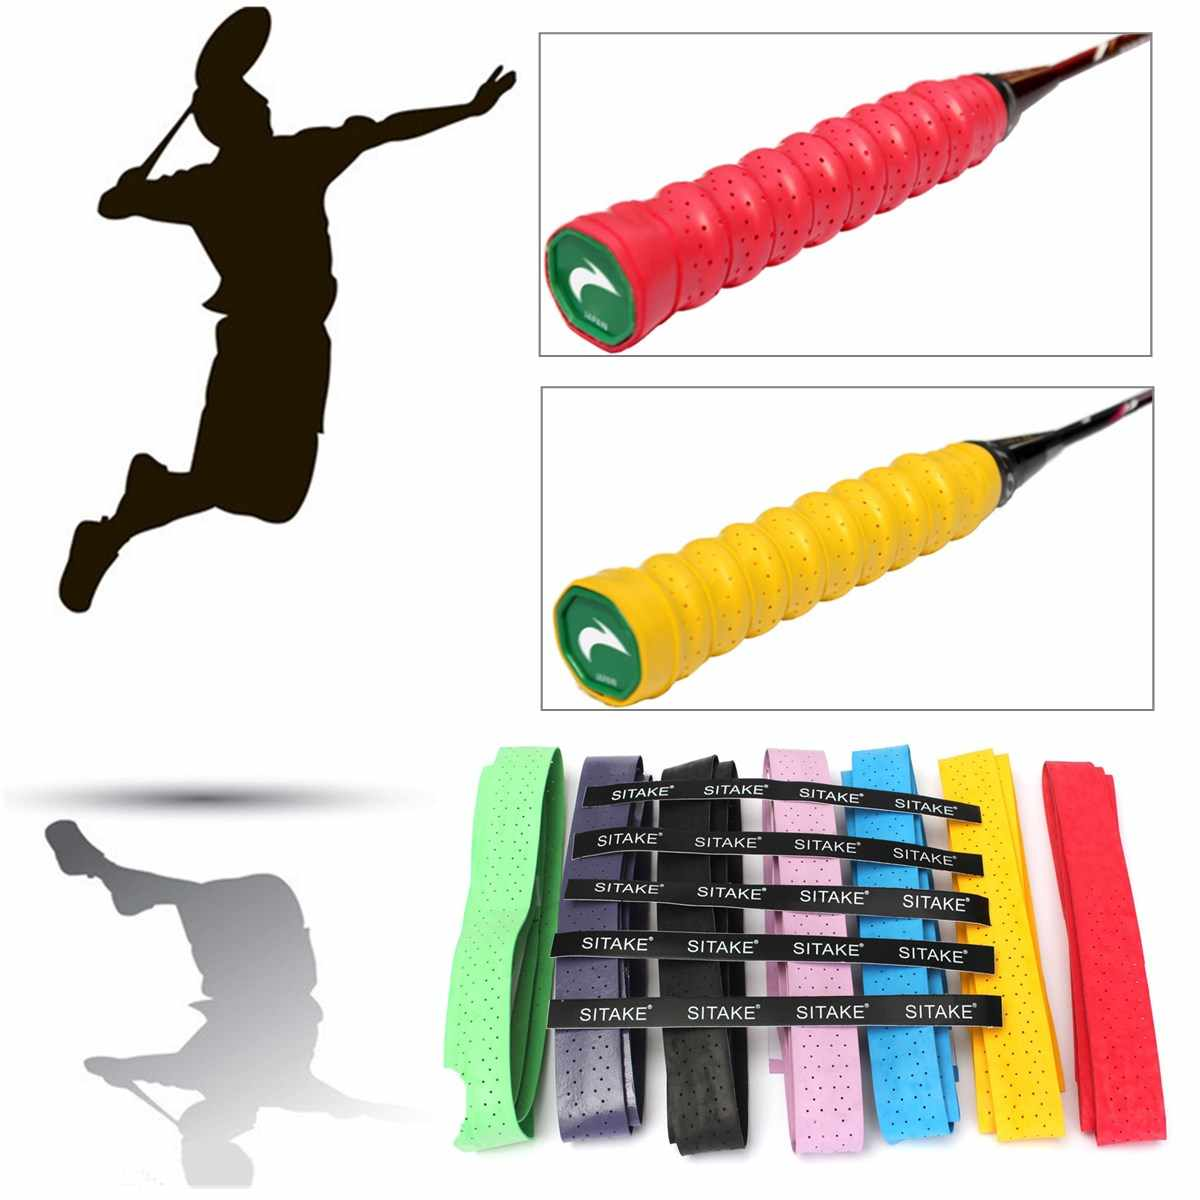 Handle Cover Bandage Strap Fishing Rod Tennis Racket Grips Anti Slip Sweat Absorbed Wraps Tape Badminton Squash Racket Grab